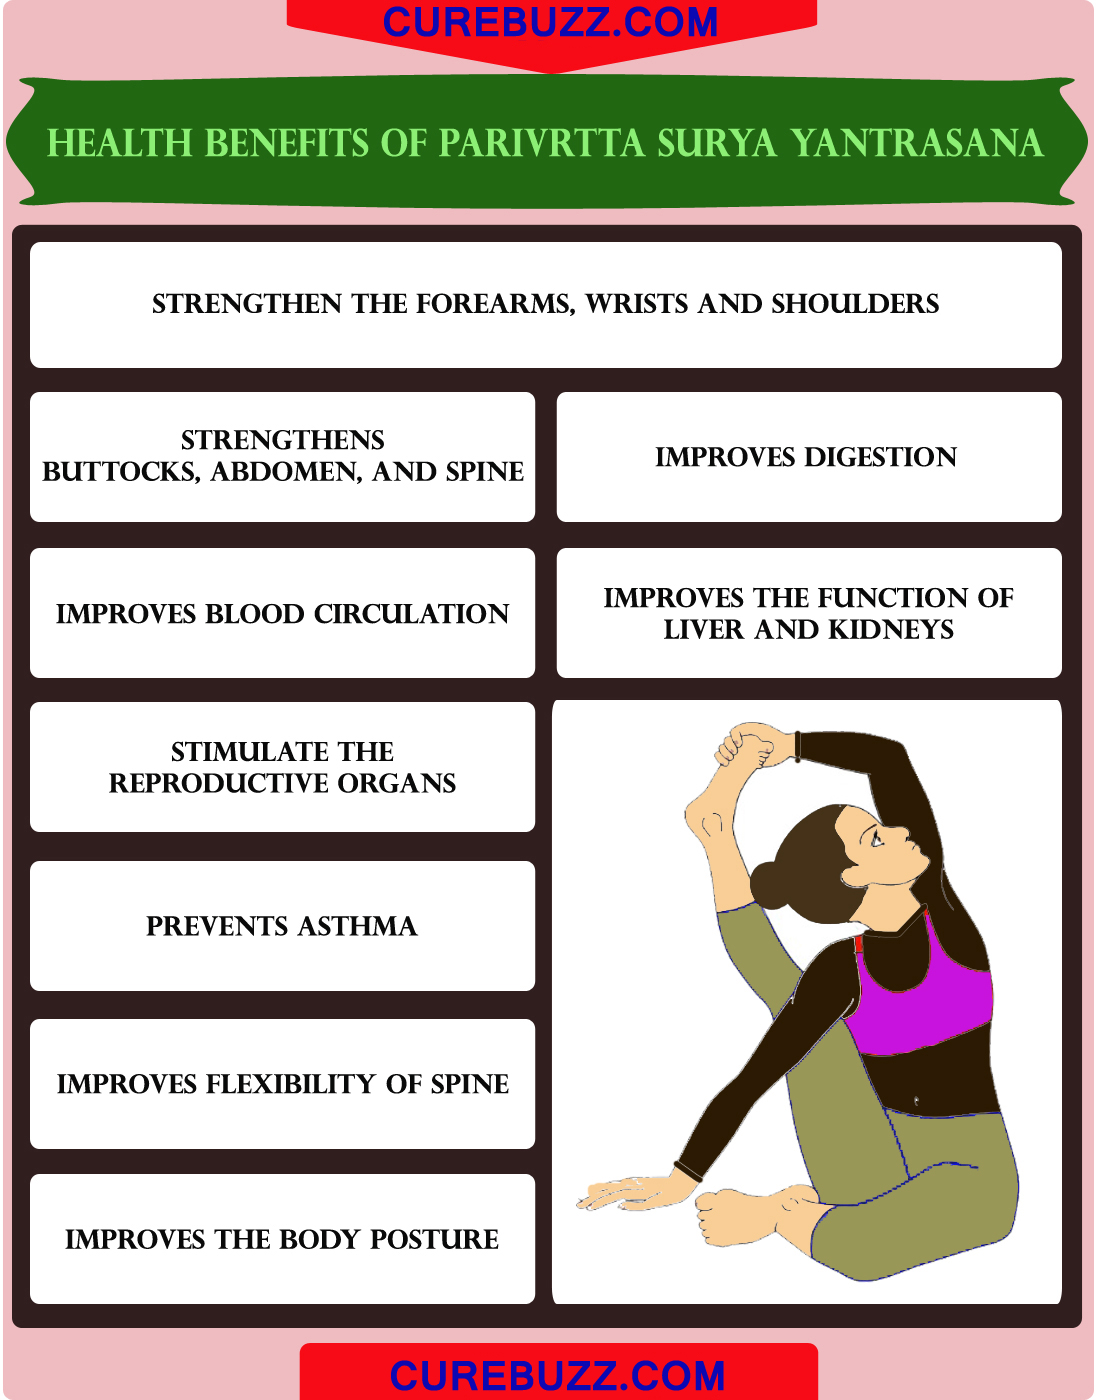 Health benefits of Parivrtta Surya Yantrasana